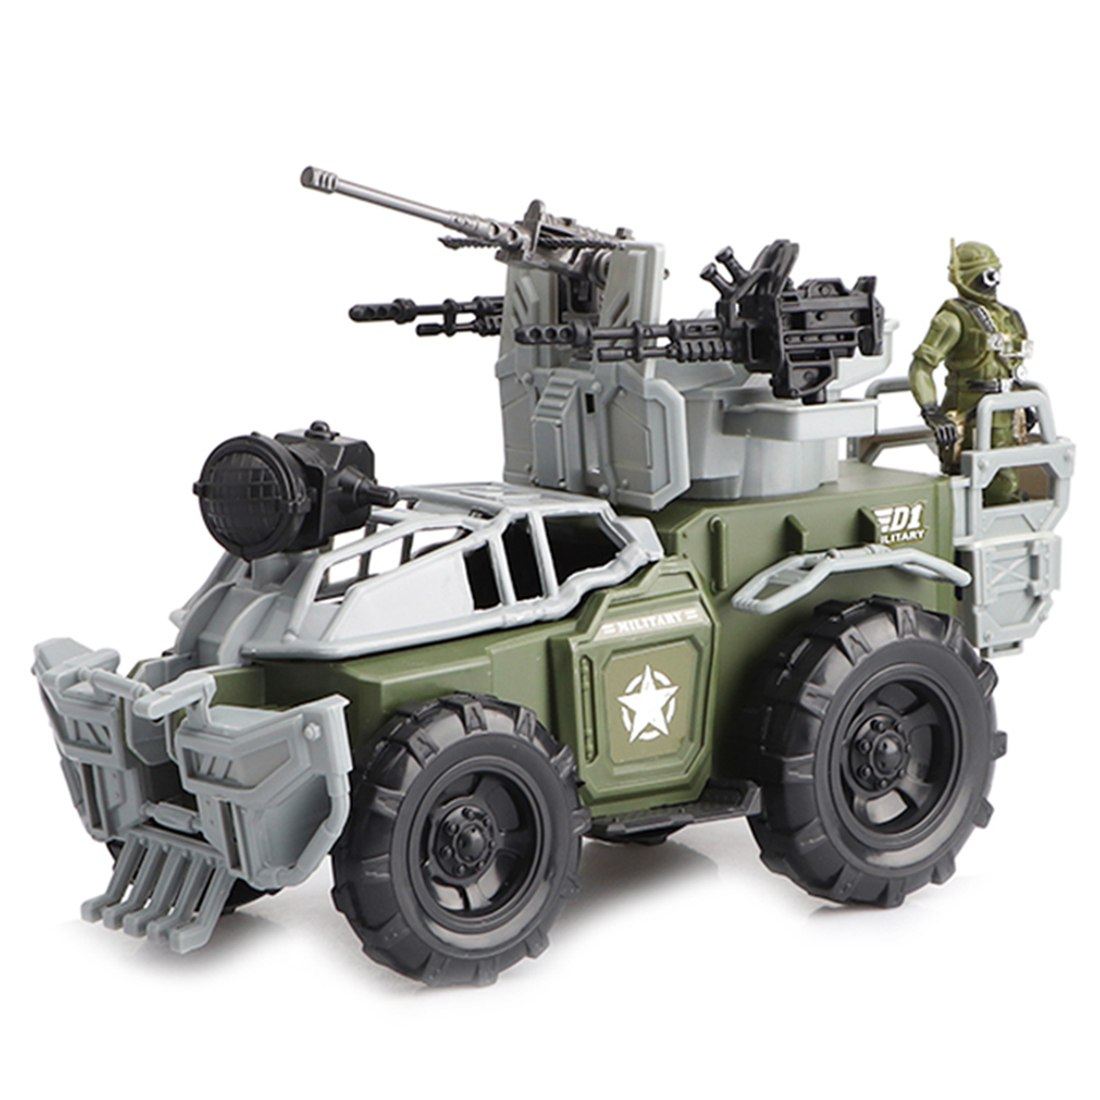 31cm Military Armored Car Inertia Car Model Kits With Soldier For 3.75 Inch 1/18 Scale Soldier Model Figure Toys 2019